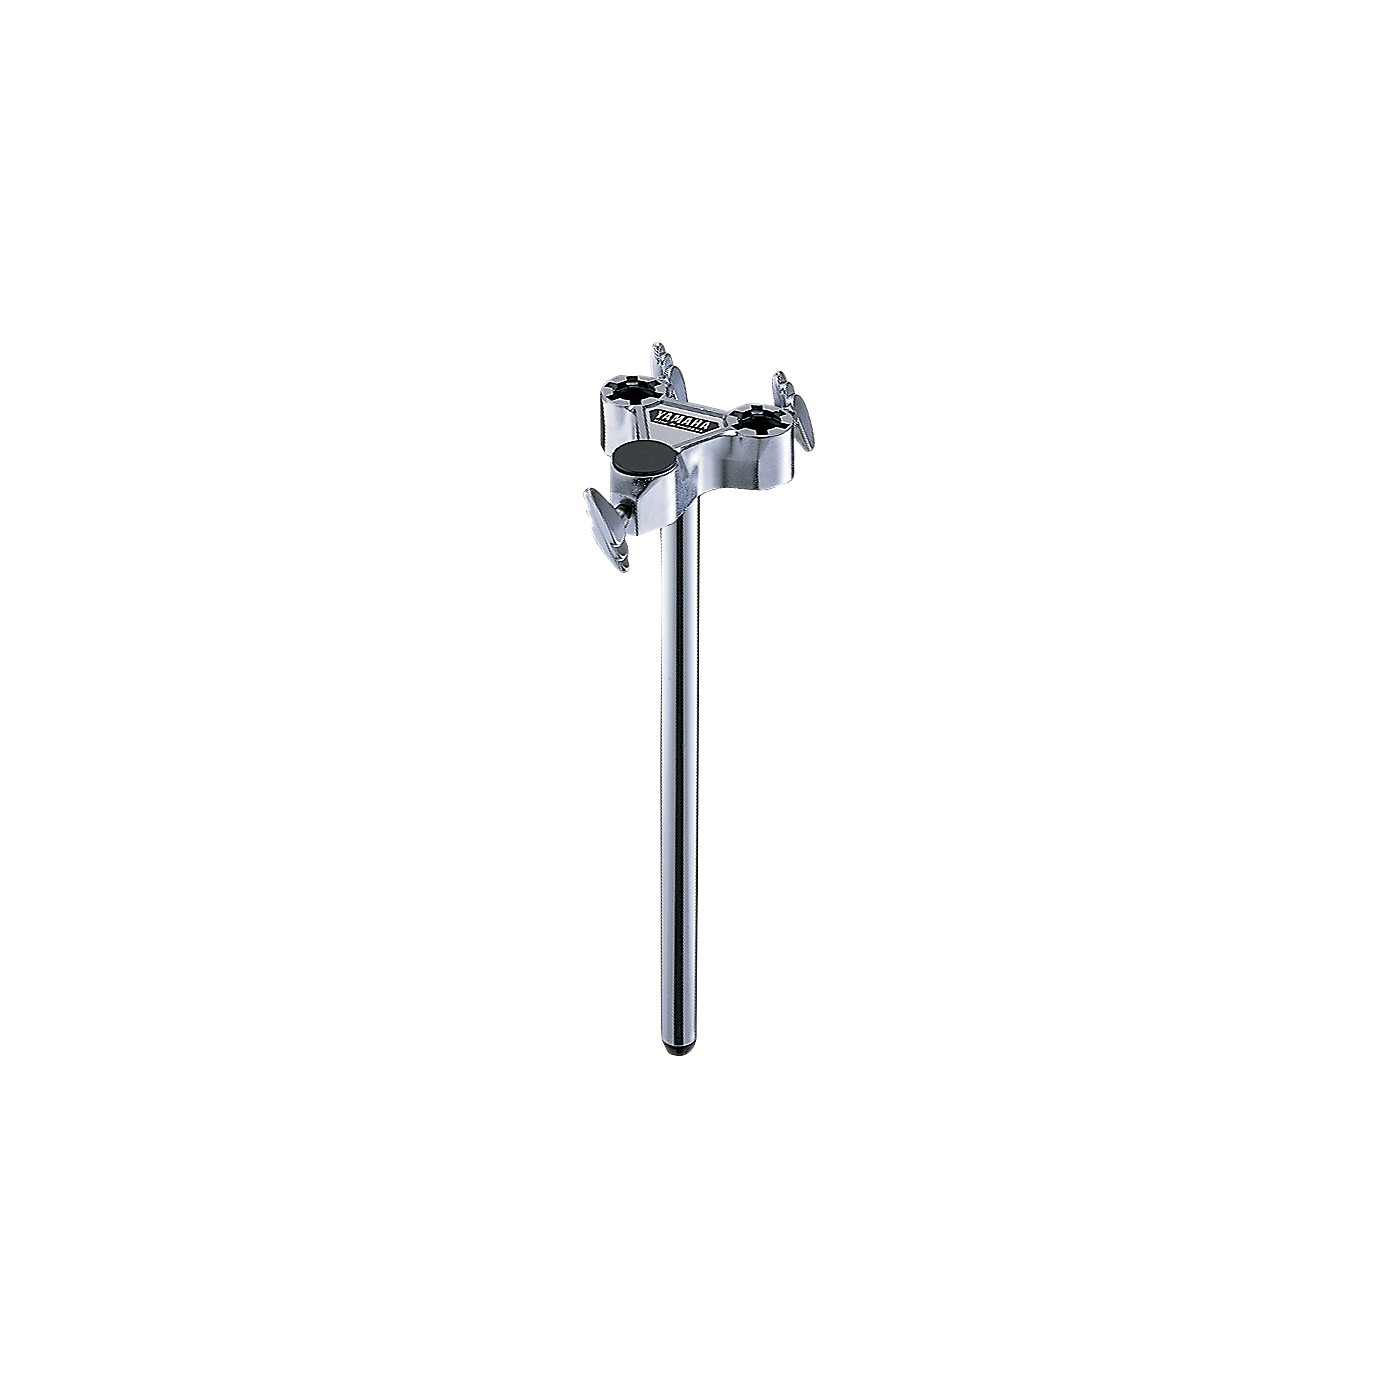 Yamaha 3-Hole Receiver for Cymbal or Drum Stands thumbnail